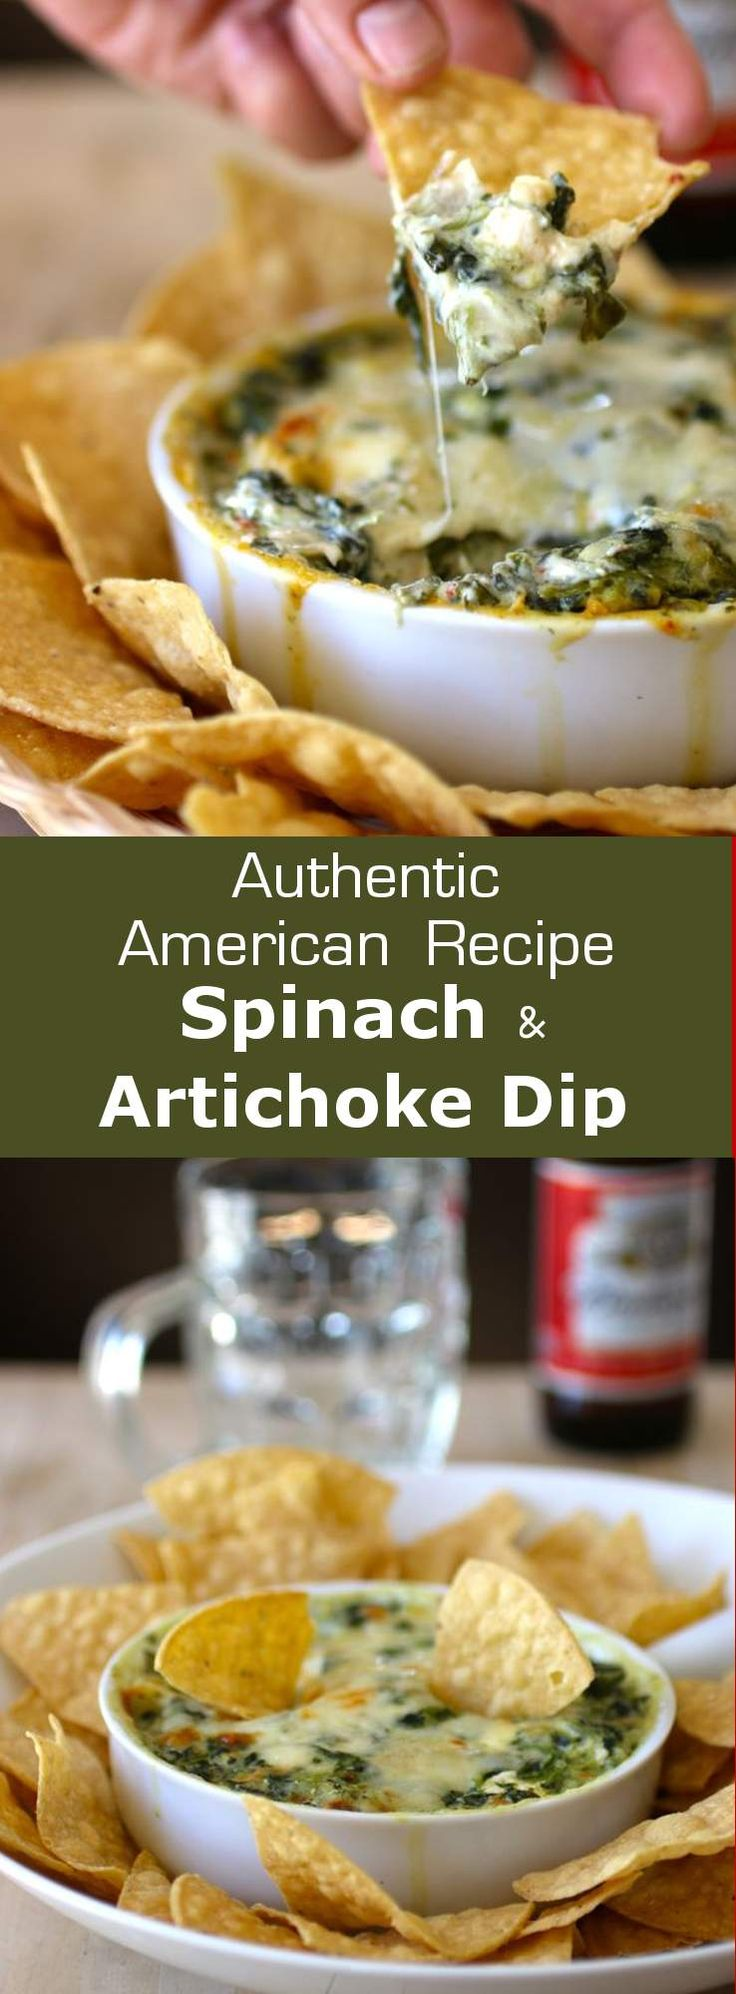 Spinach and artichoke dip has been a classic American appetizer since the 50s. #appetizer #american #196flavors